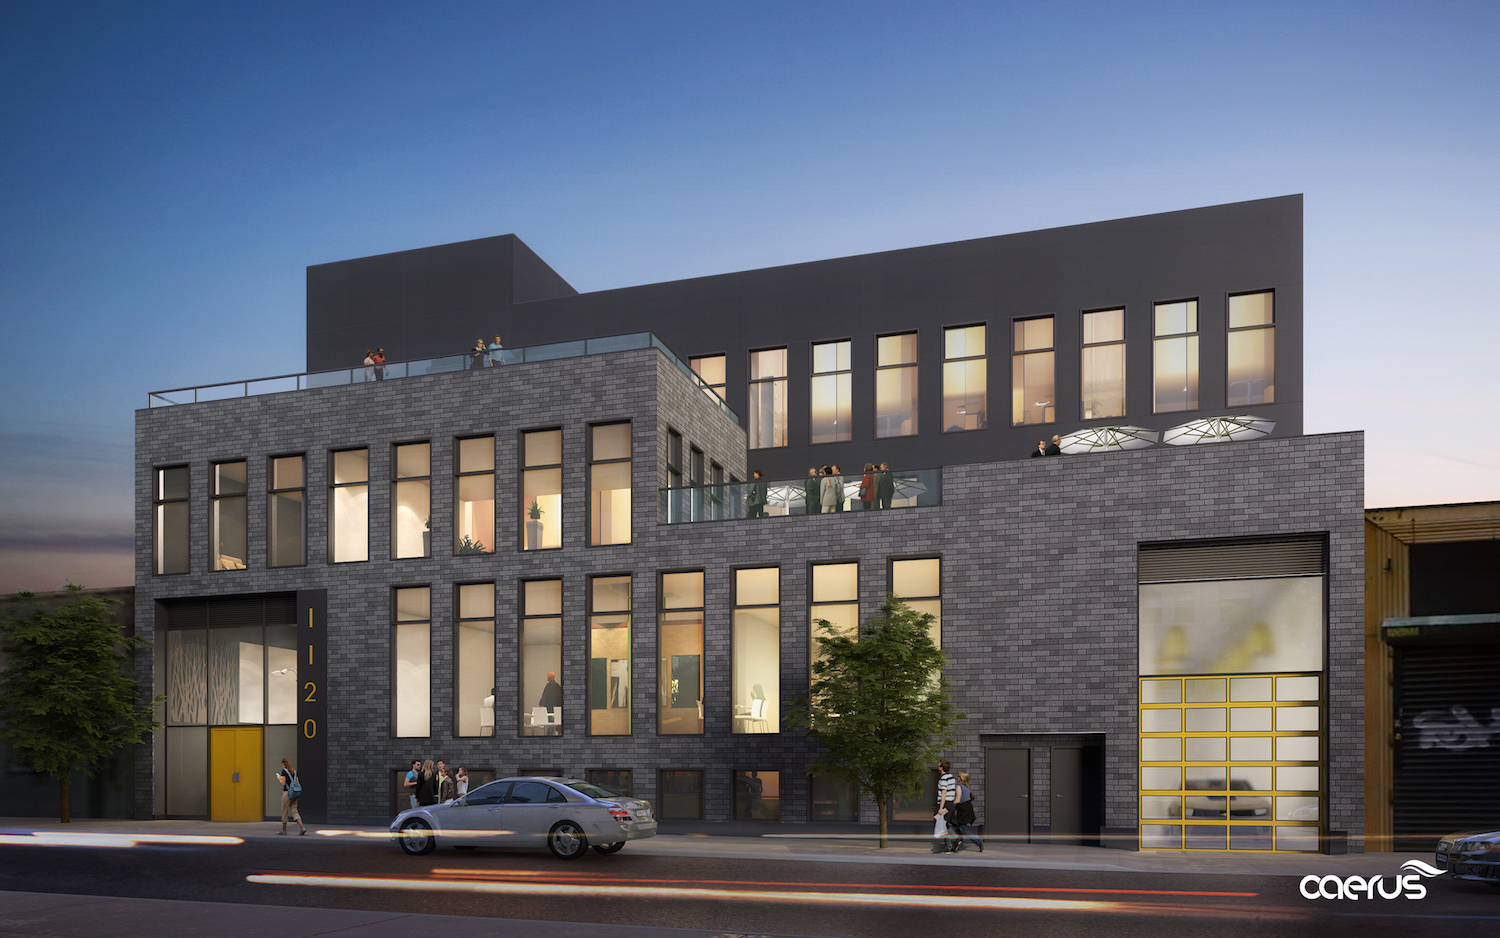 11-20 46th Road. rendering by C3D Architects